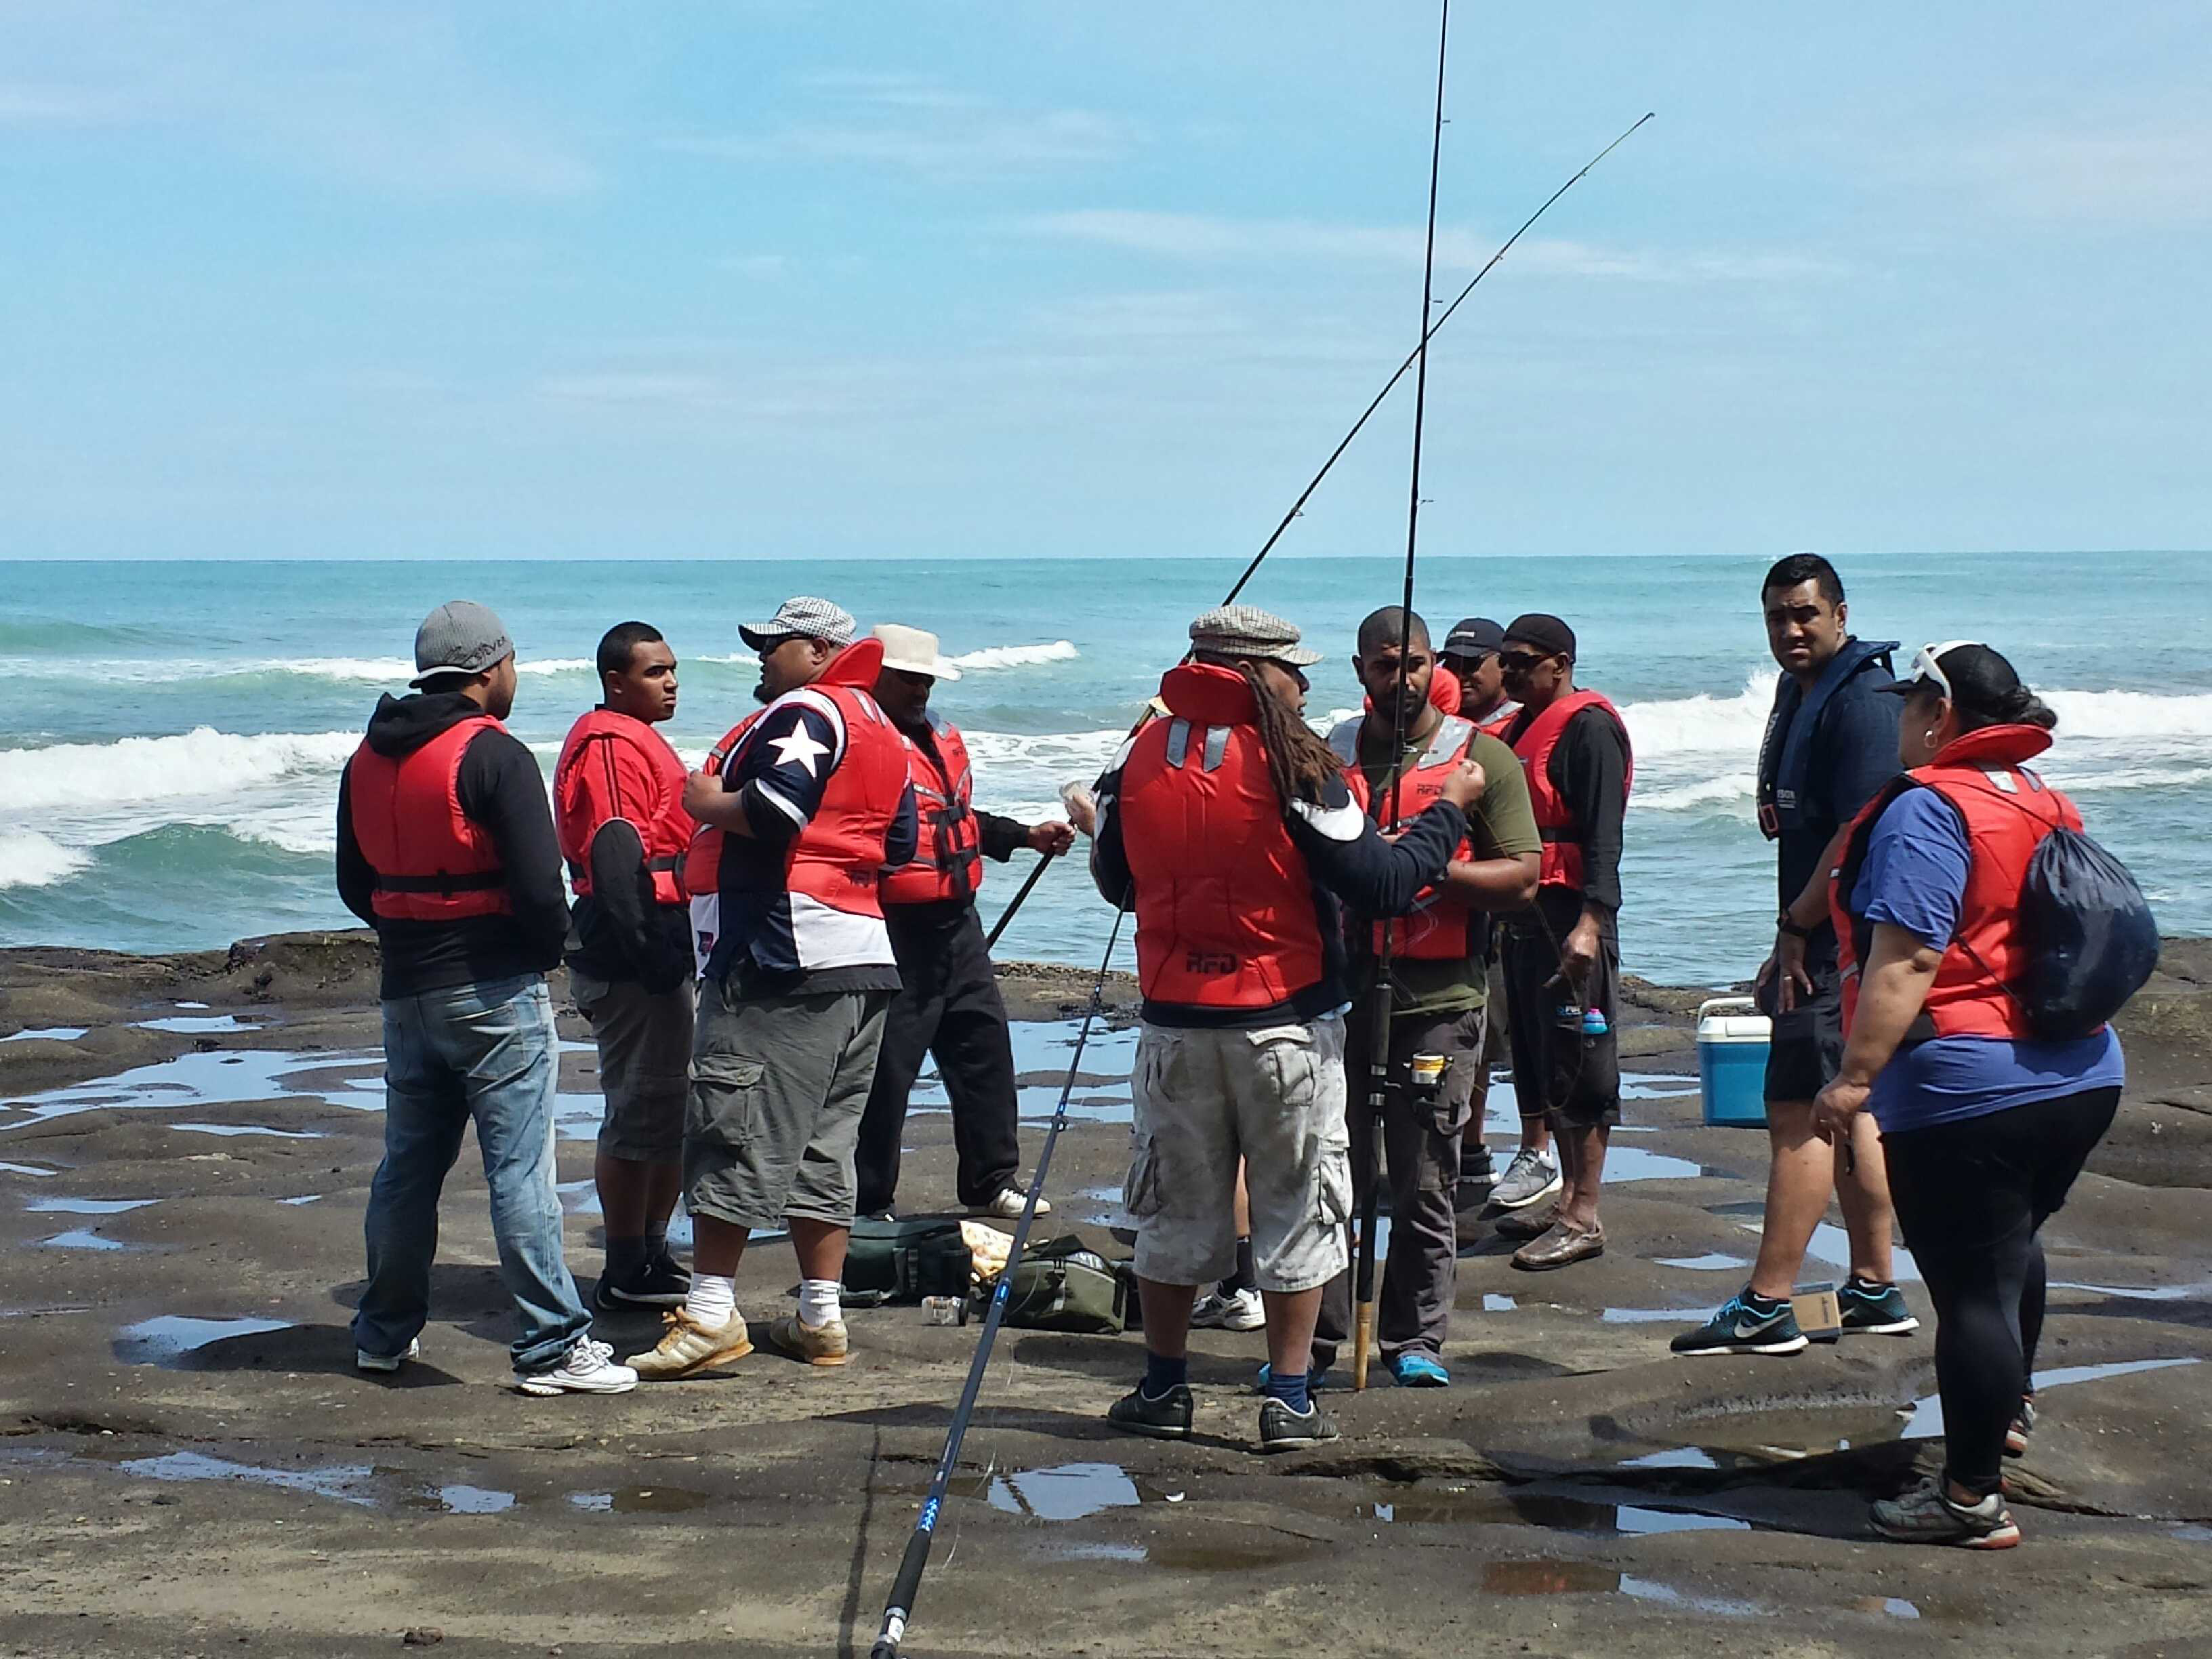 Watch the swells and wear a lifejacket: Auckland rock fishing safety task force